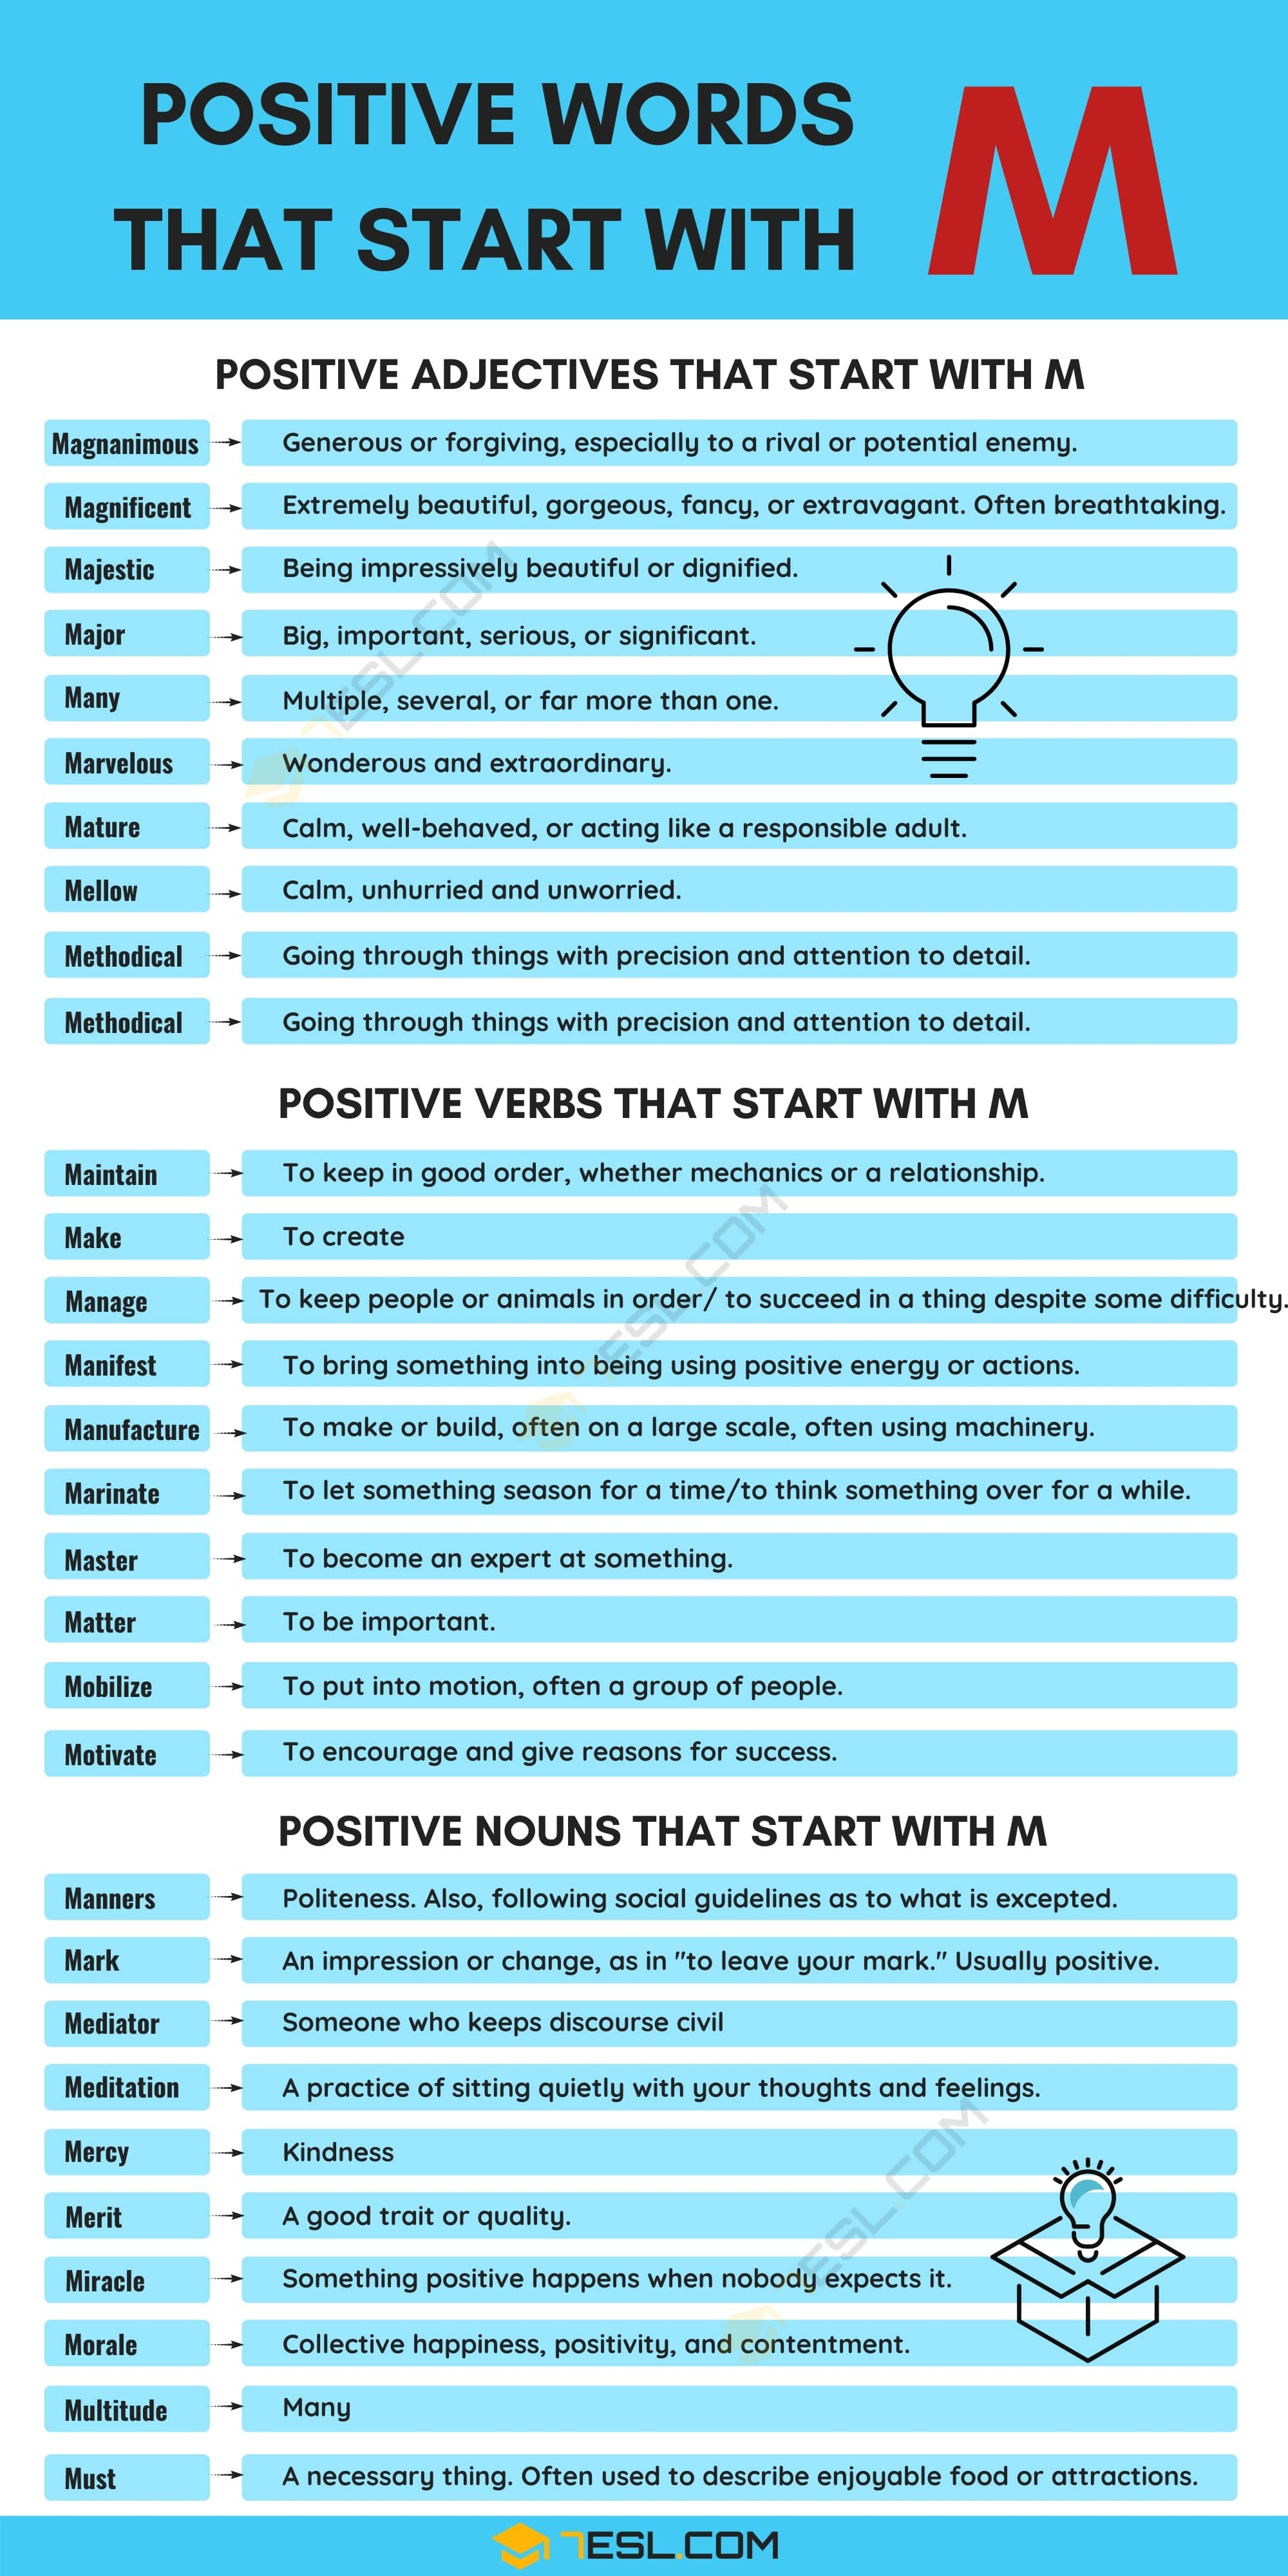 Positive Words That Start With M (Adjectives, Verbs, Nouns)